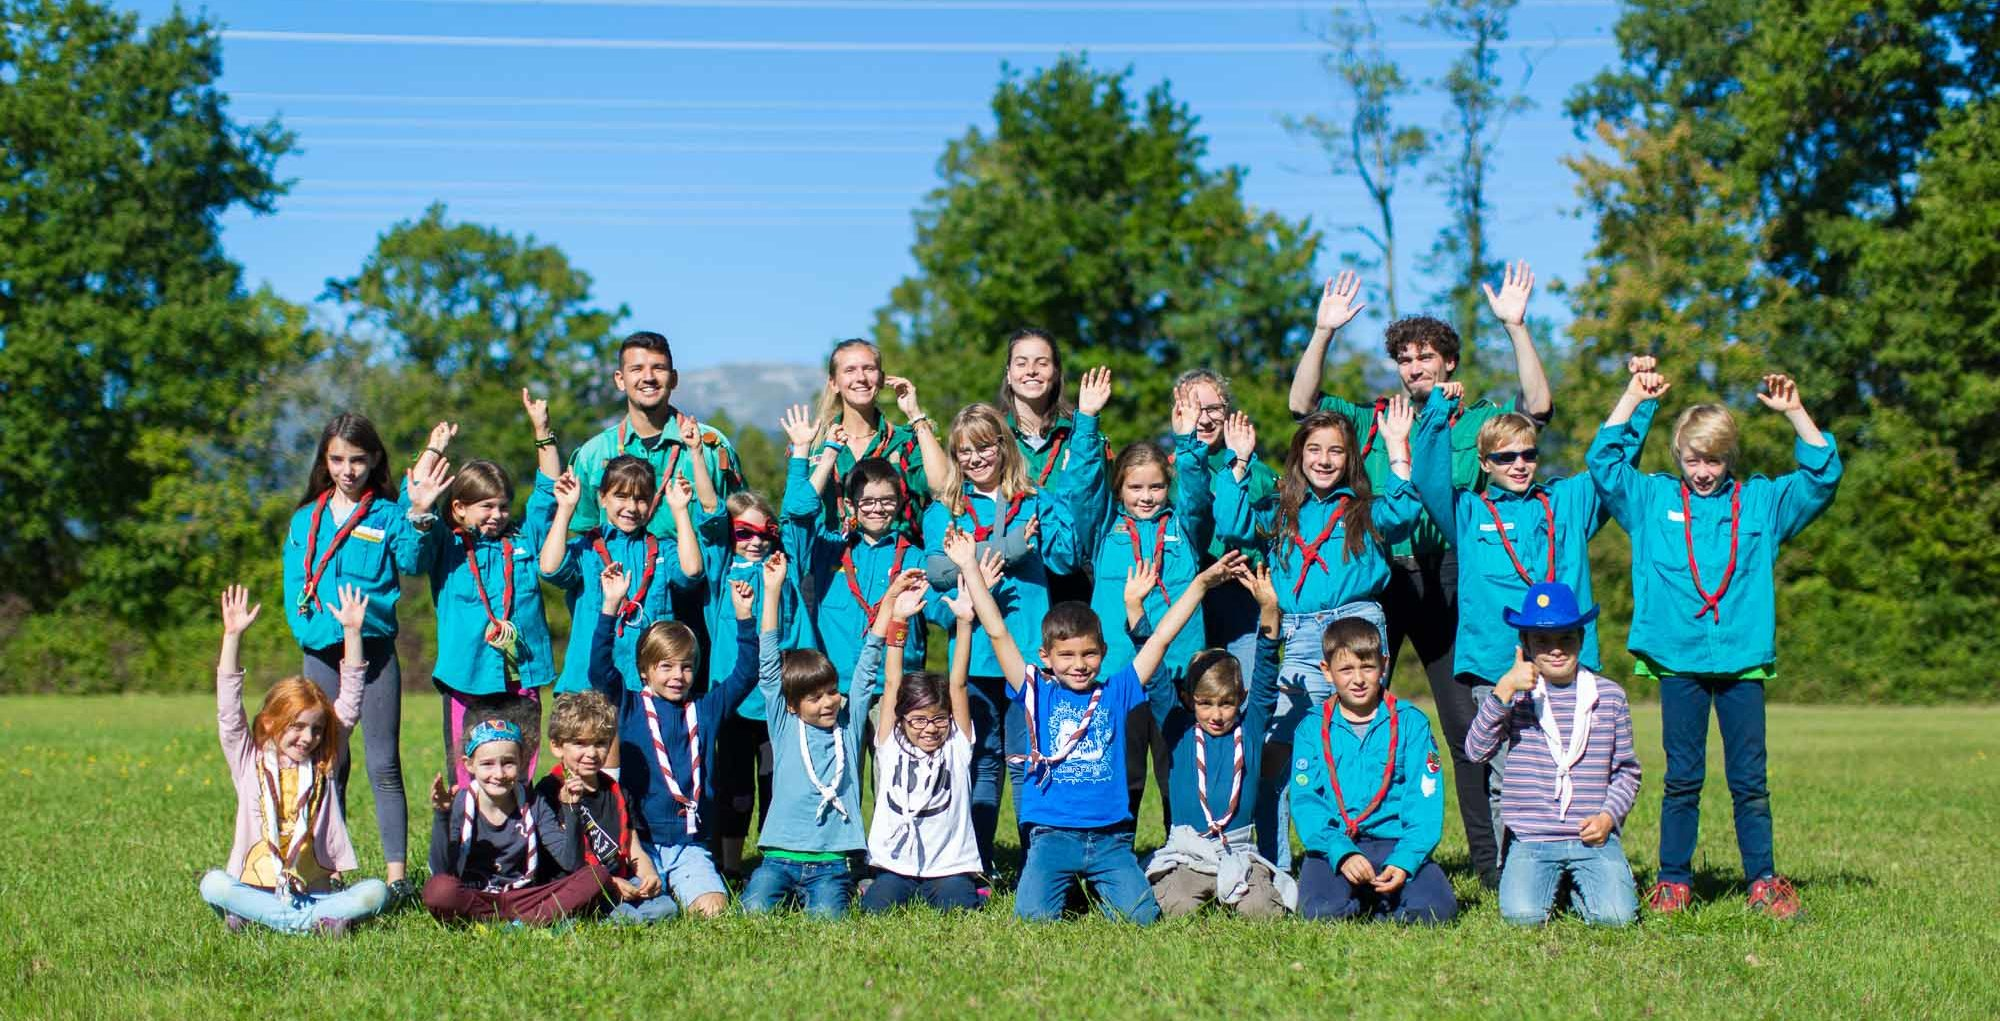 Groupe scout Ceratonia